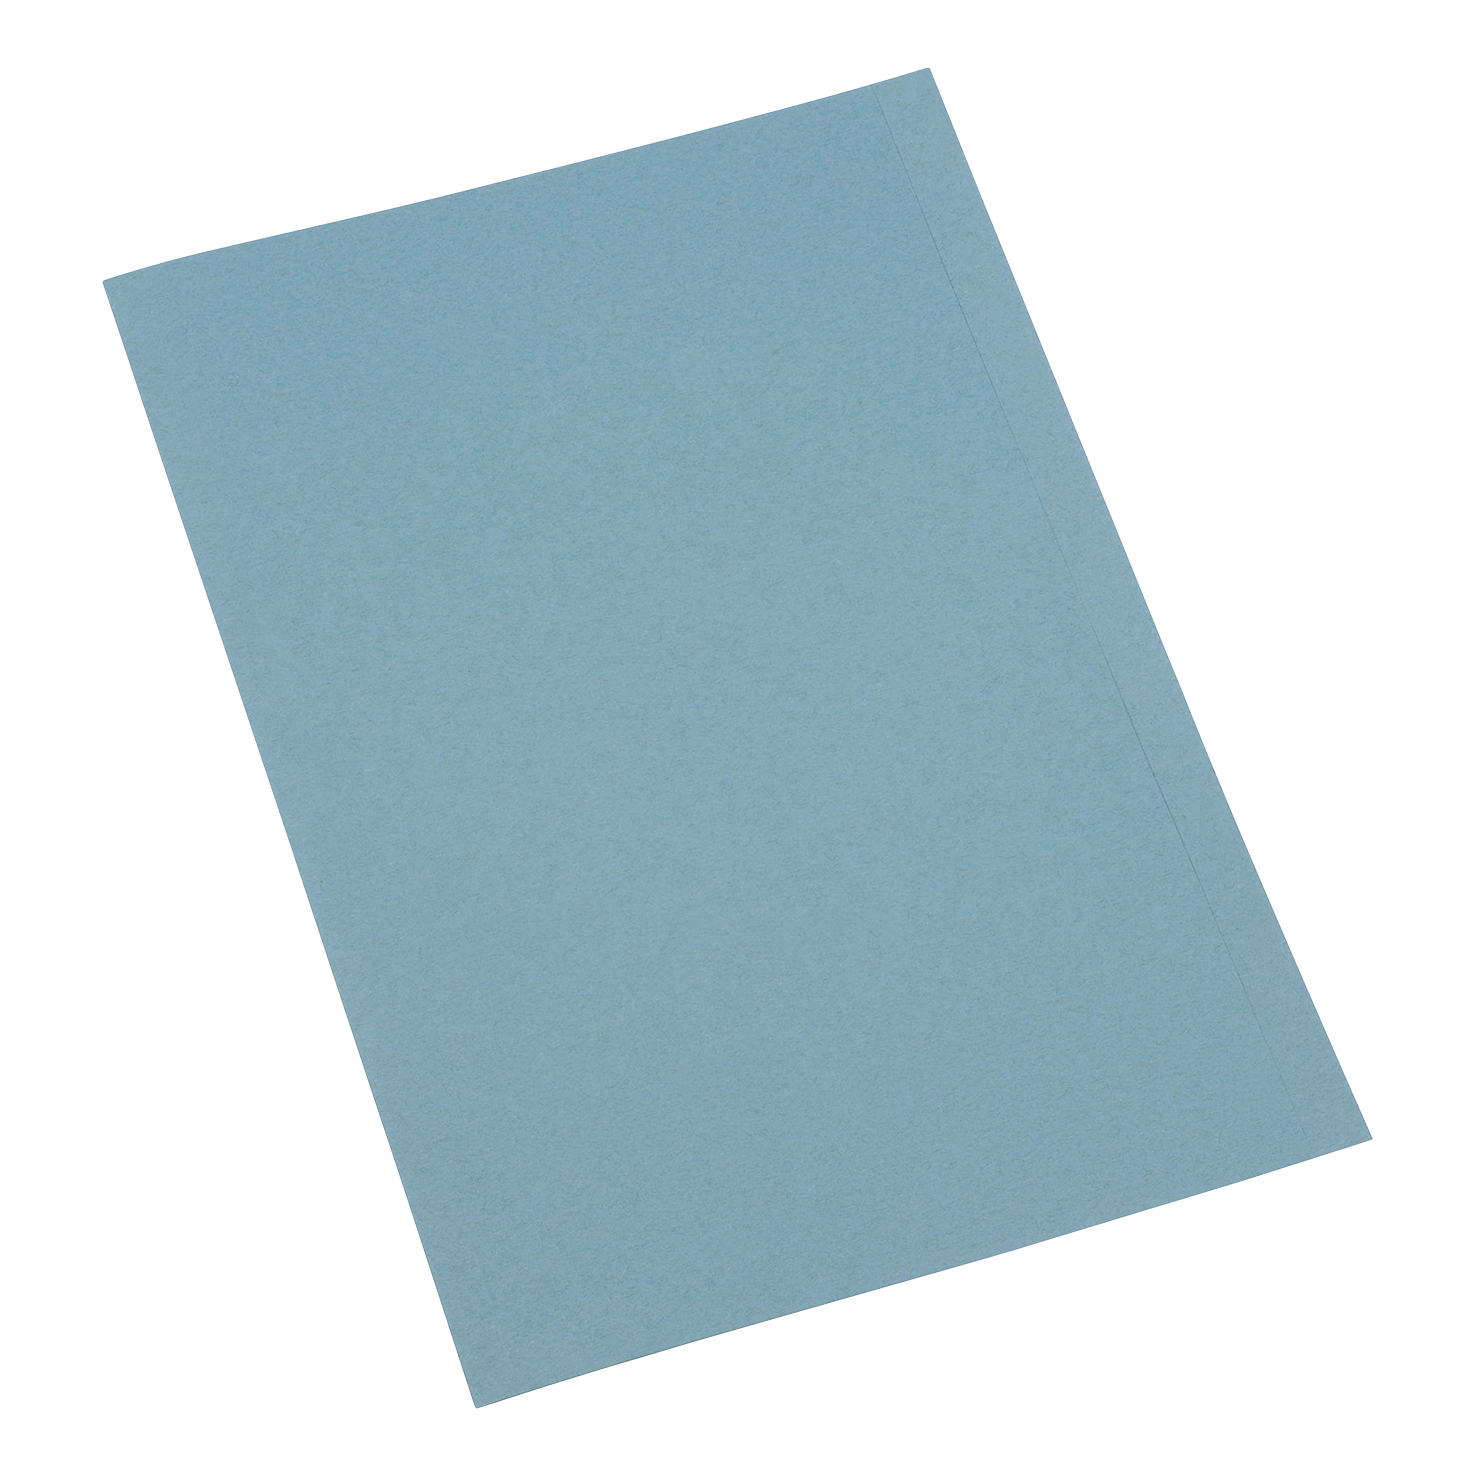 Square Cut Folders 5 Star Office Square Cut Folder Recycled 250gsm A4 Blue Pack 100